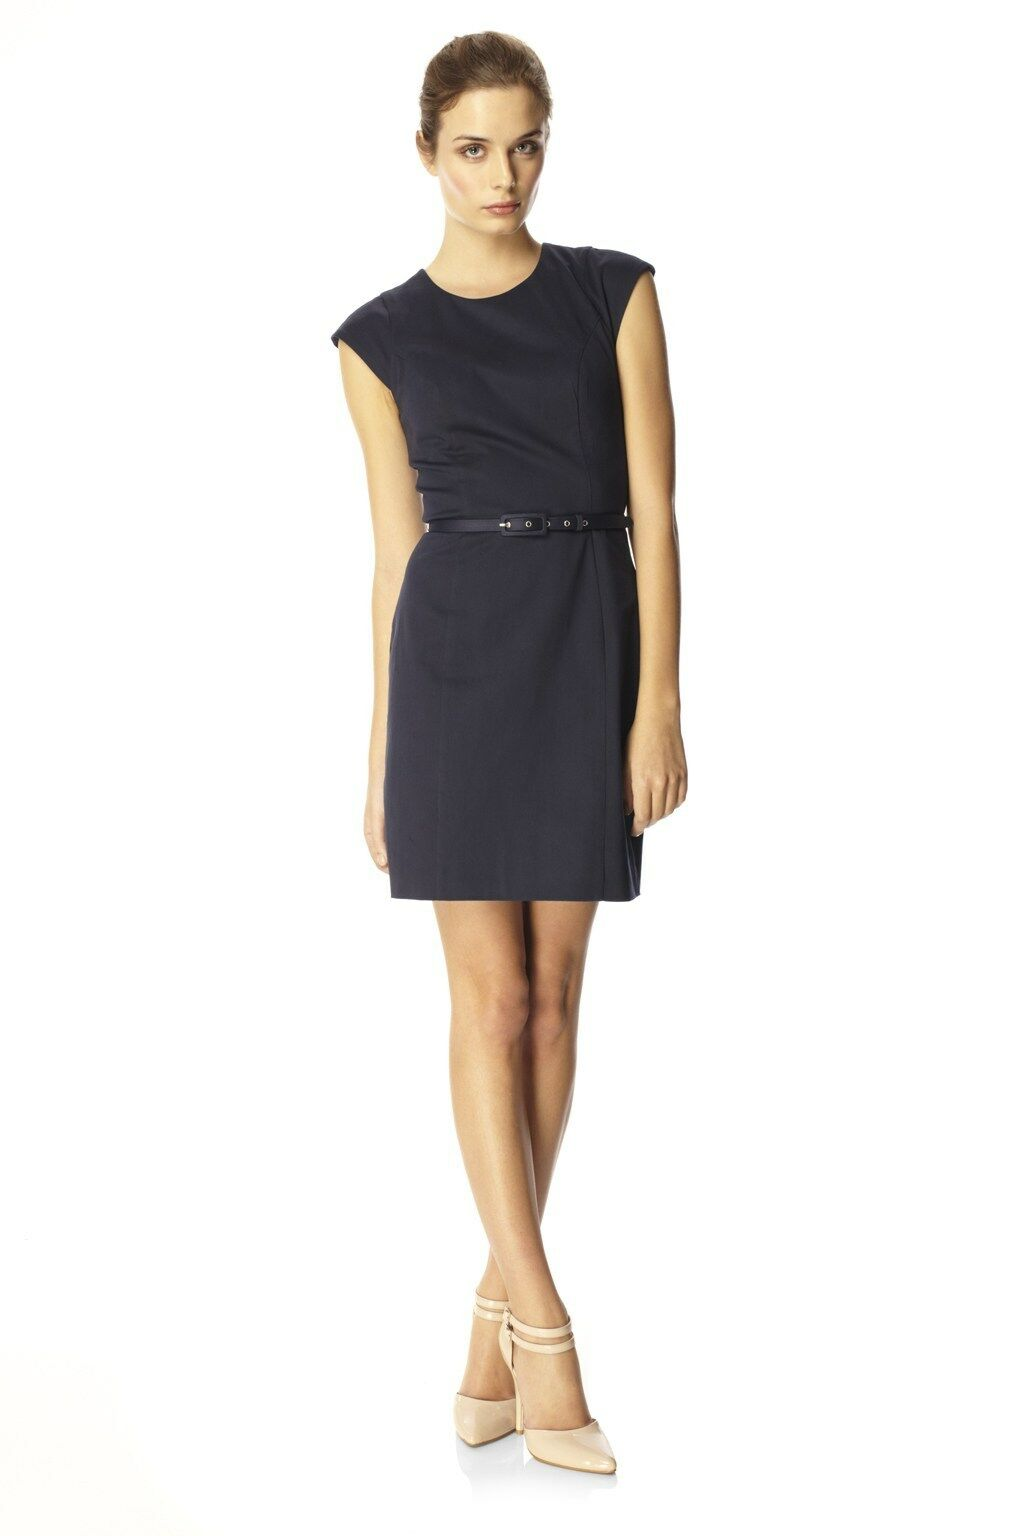 BNWT FCUK French Connection @ ASOS Navy bluee Ten to Ten Cotton Belted Dress